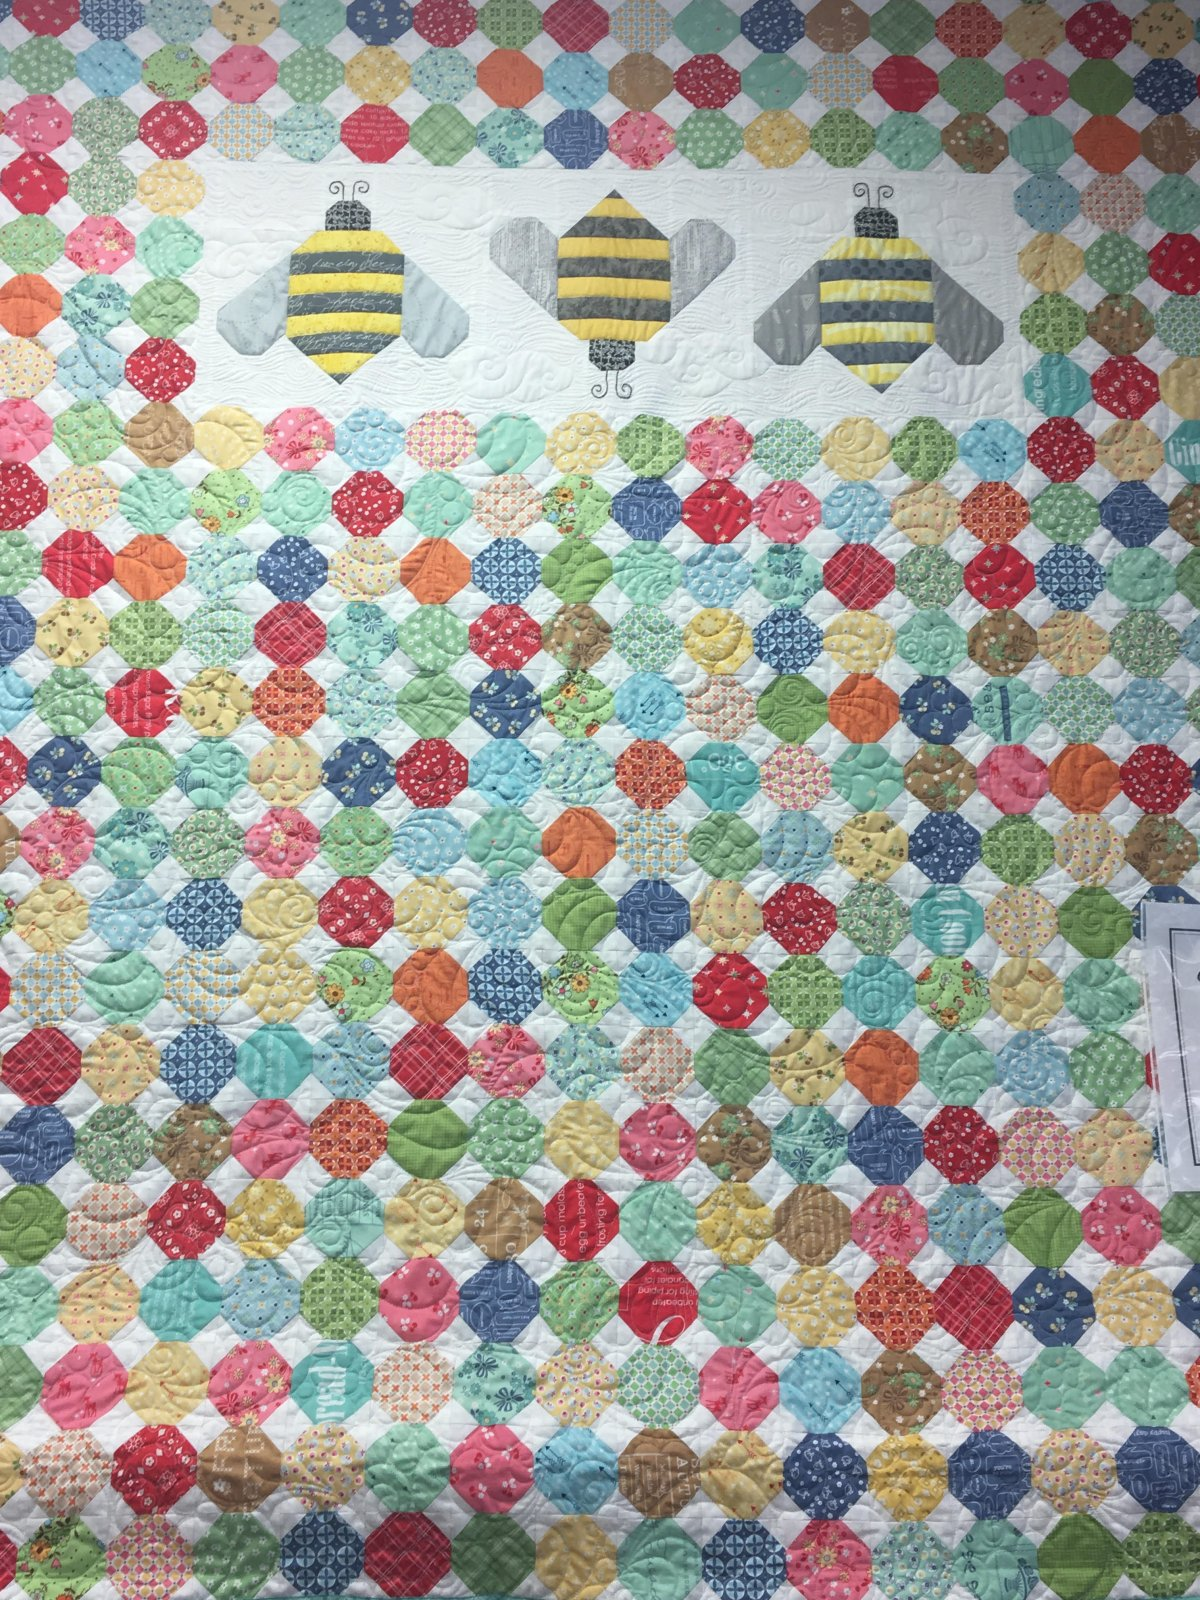 Calico Hive Quilt Kit